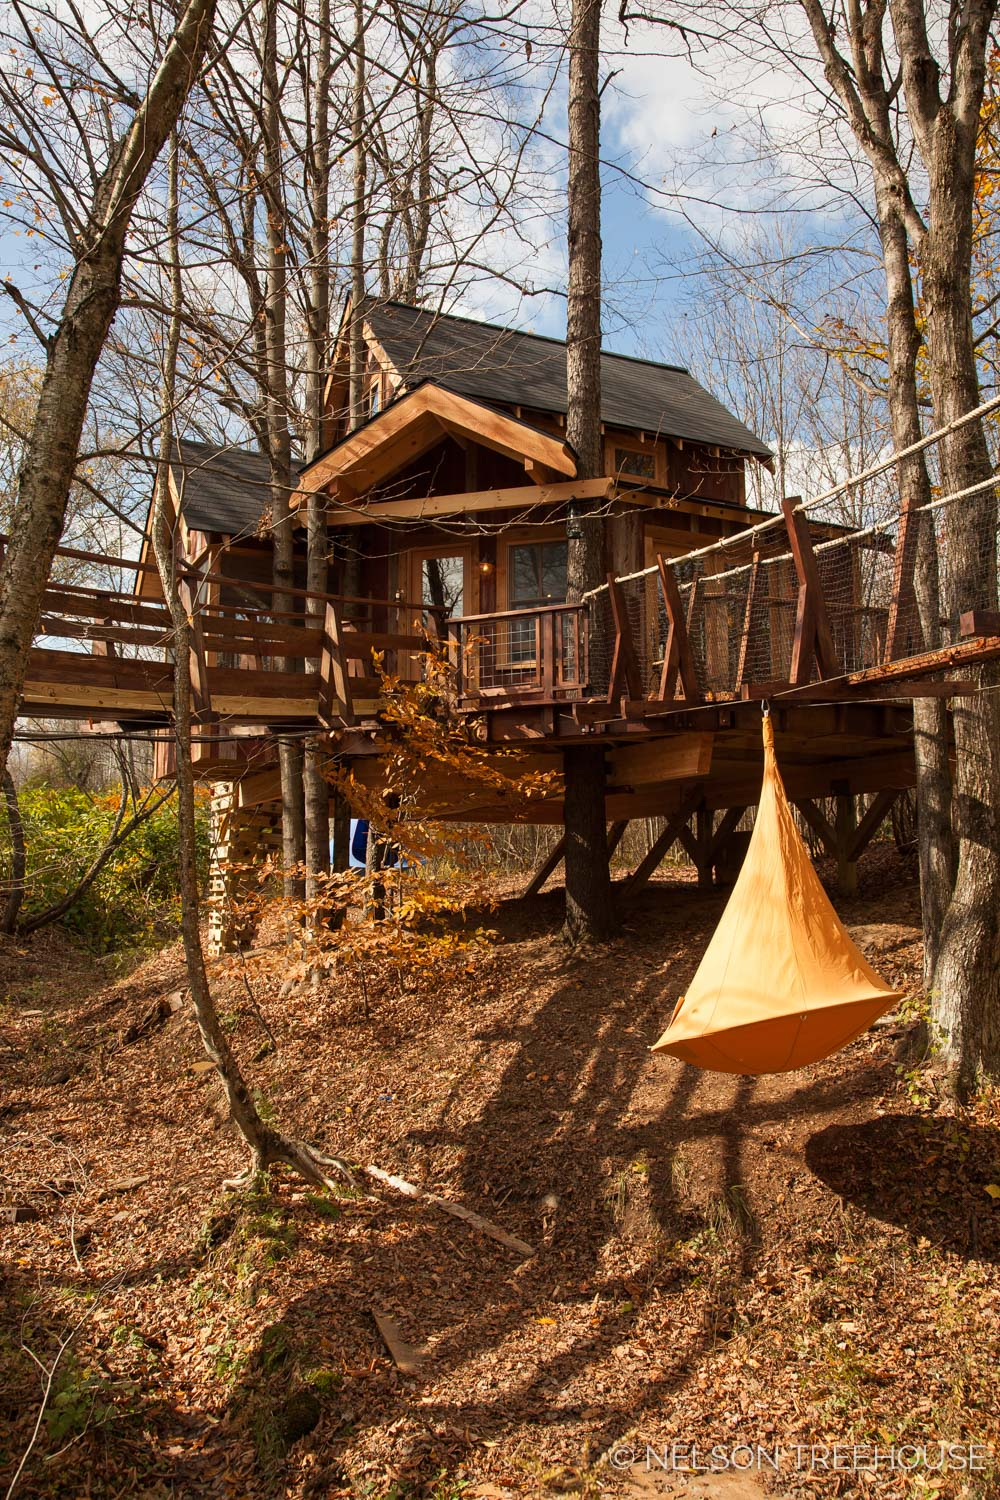 Nelson Treehouse - Adventure TEmple side view